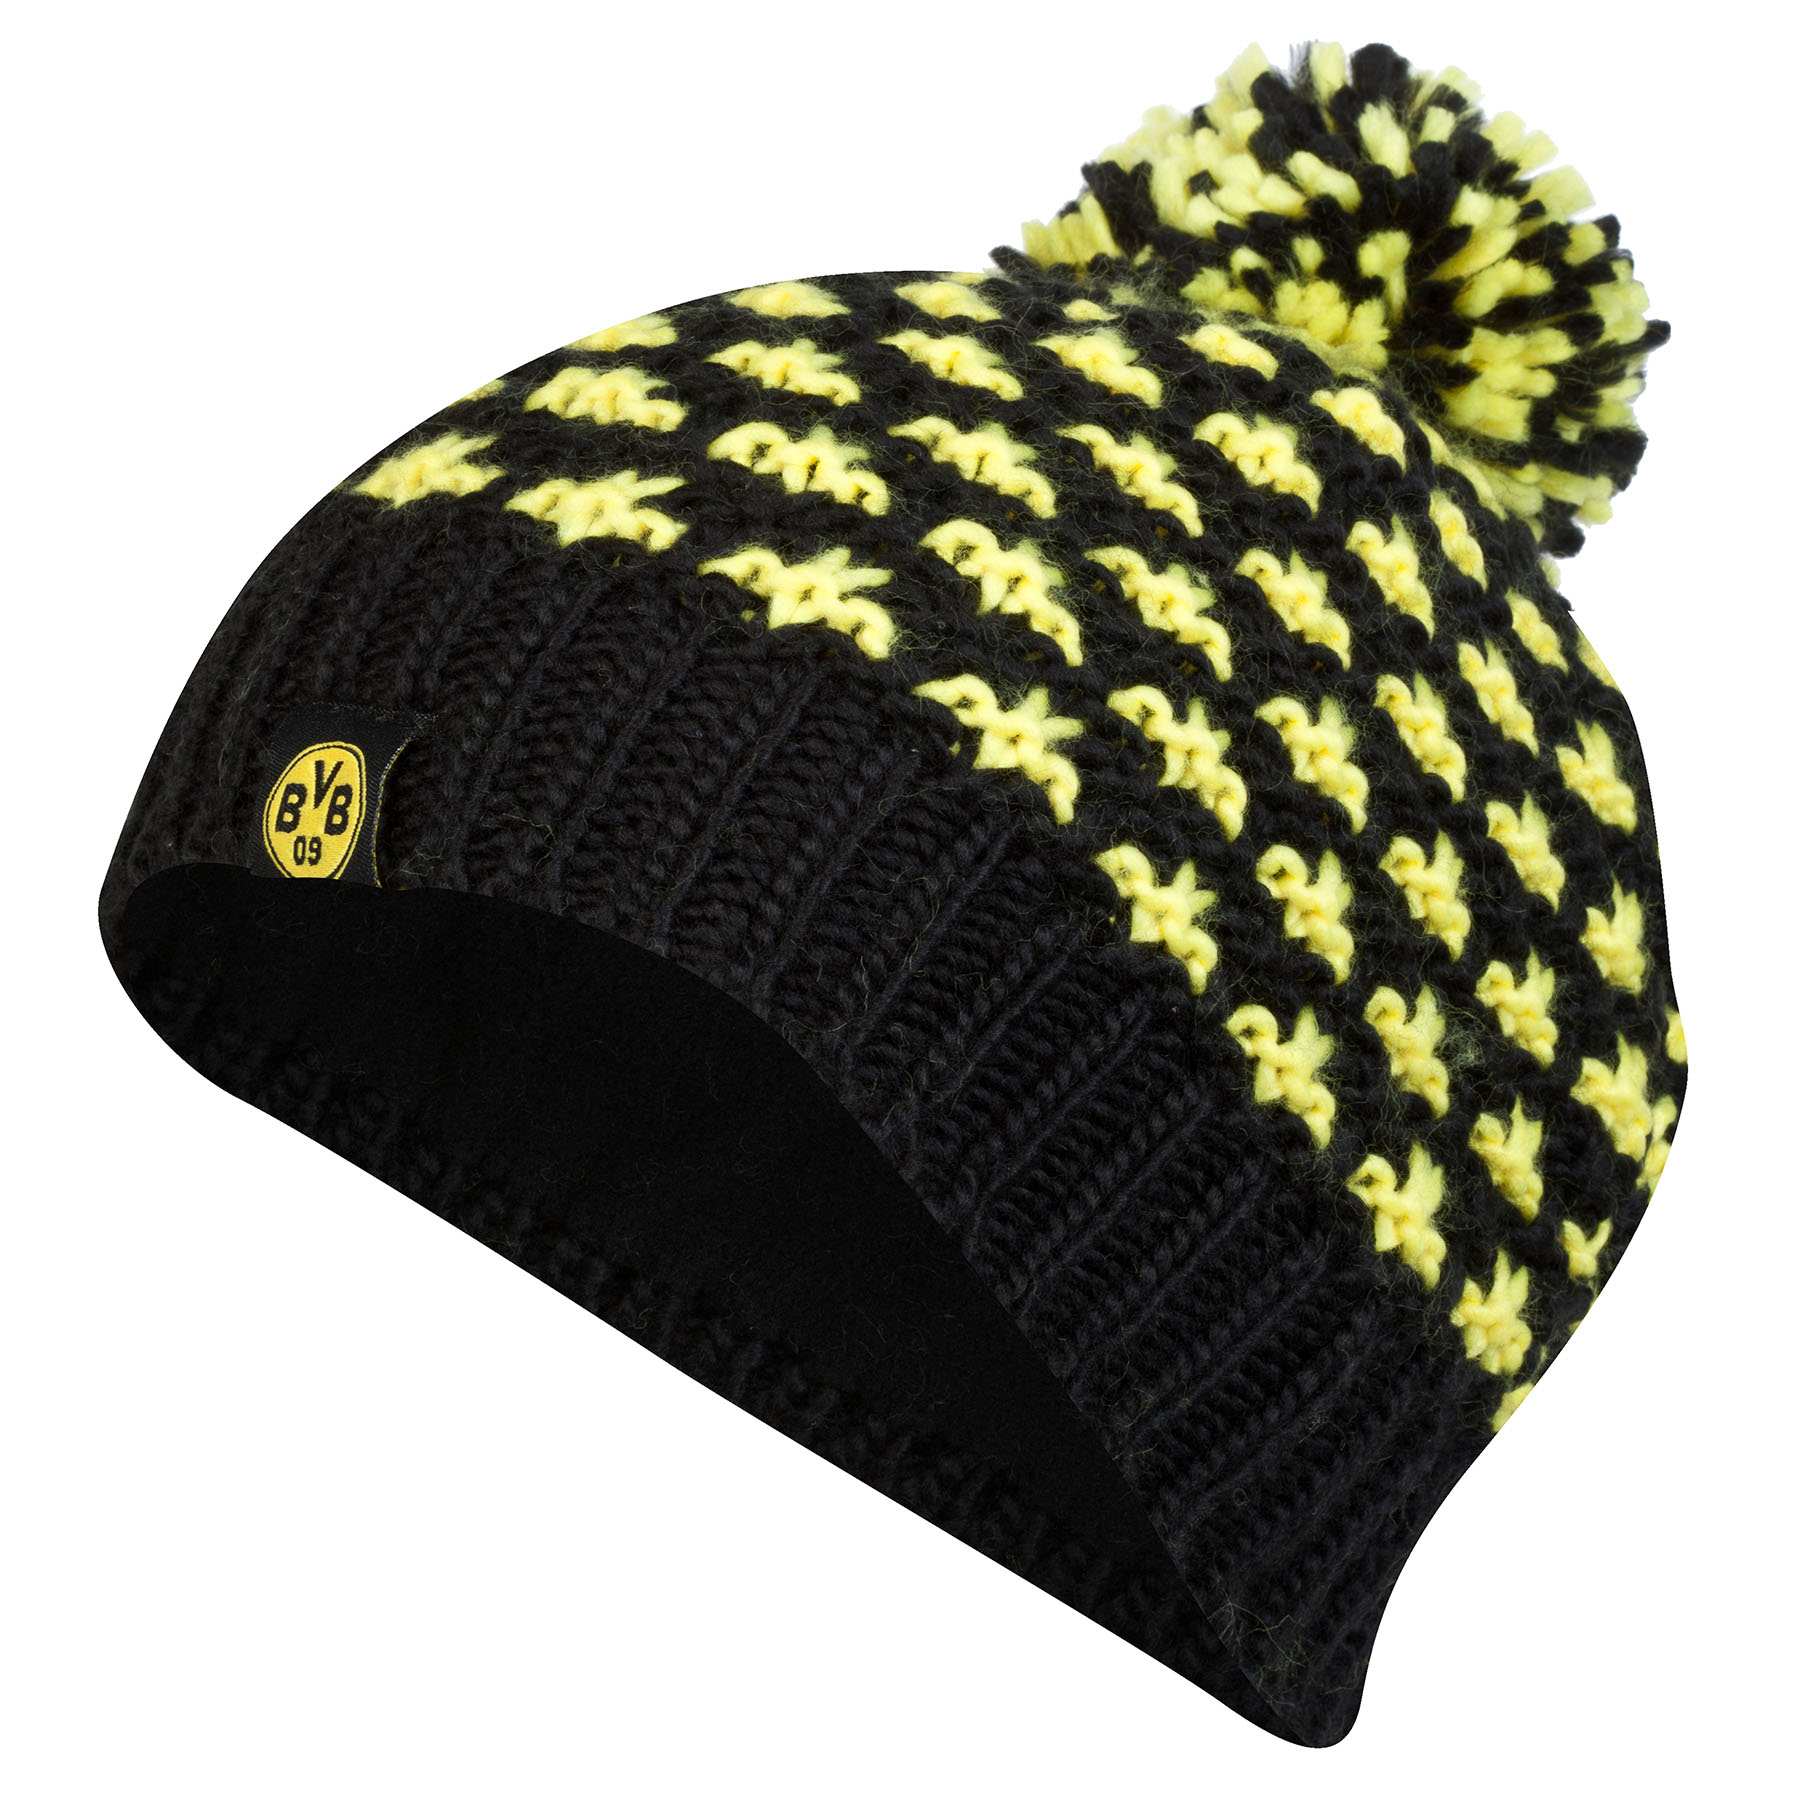 BVB Bobble Beanie Hat - Black/Yellow - Womens